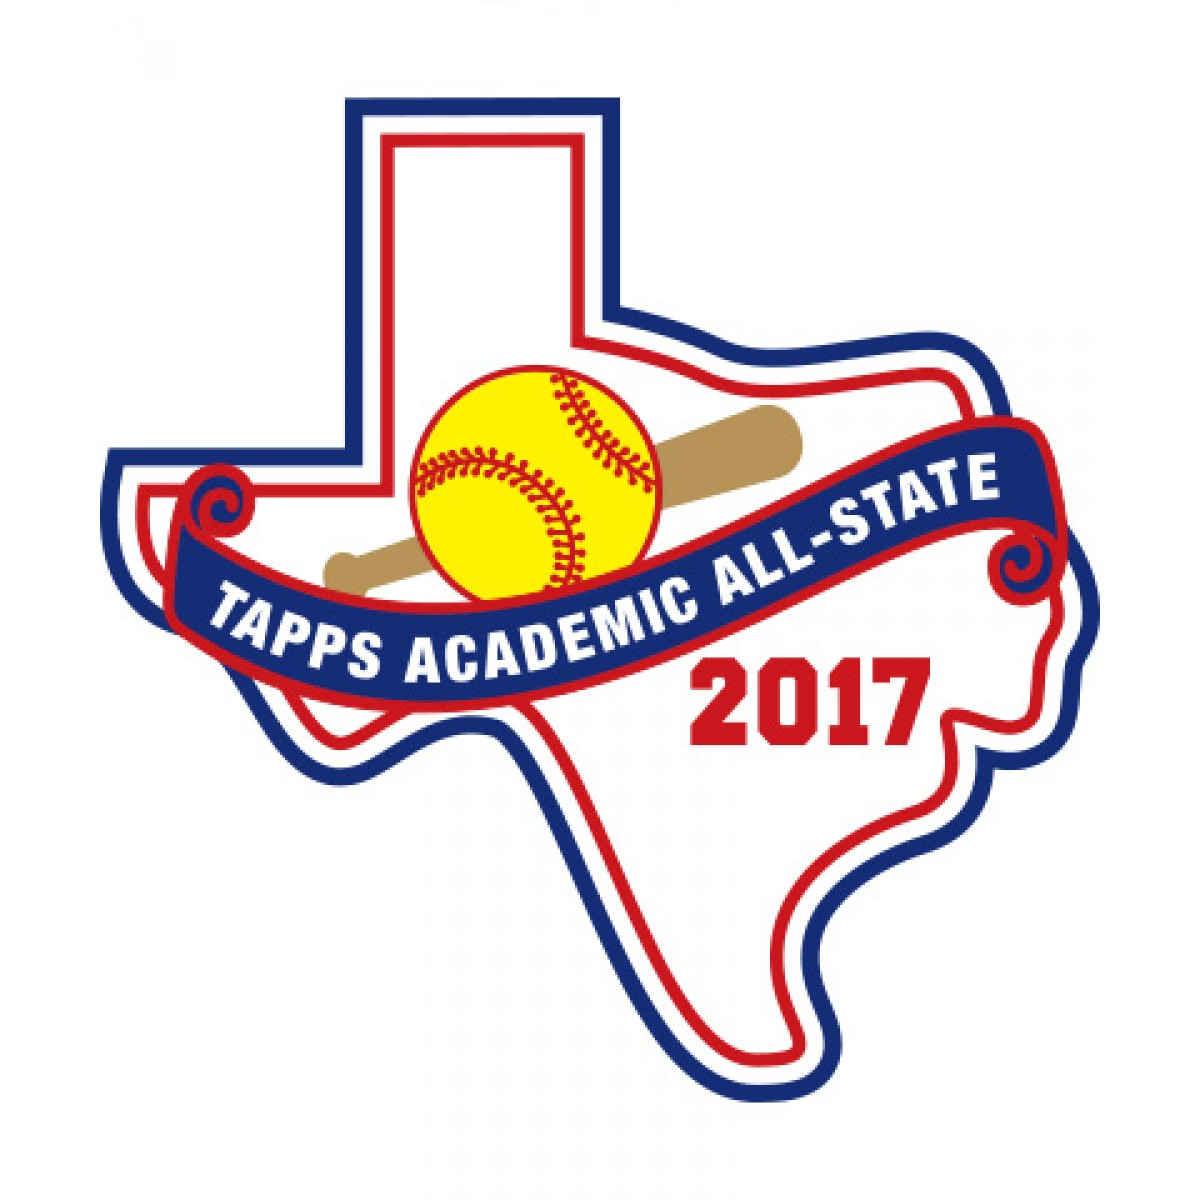 Felt 2017 TAPPS Academic All-State Softball Patch